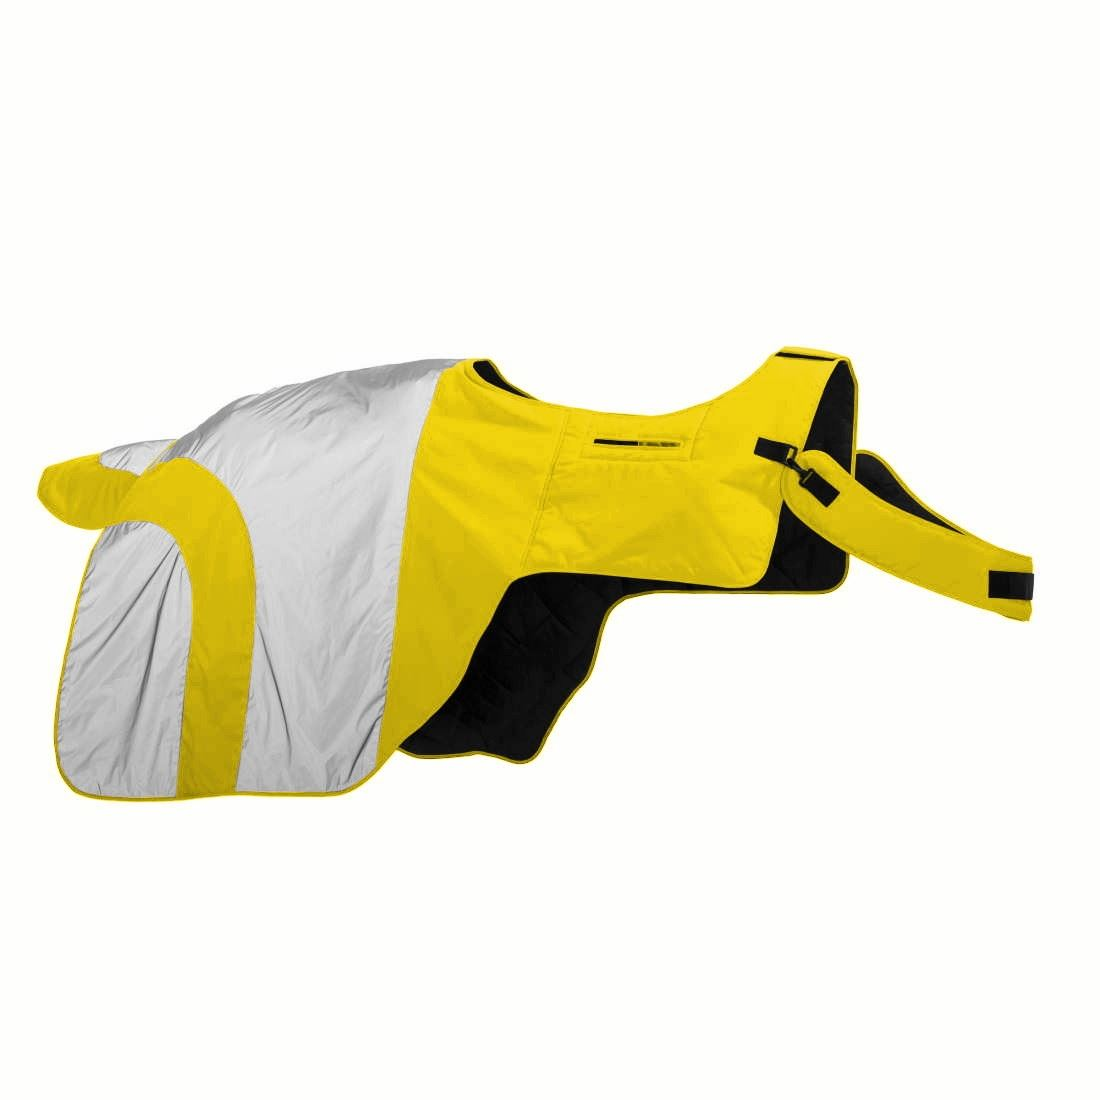 Equisafety Mercury Hi Viz Protective Horses Ride On Kidney Quater Kidney On Sheets Rugs 74da42